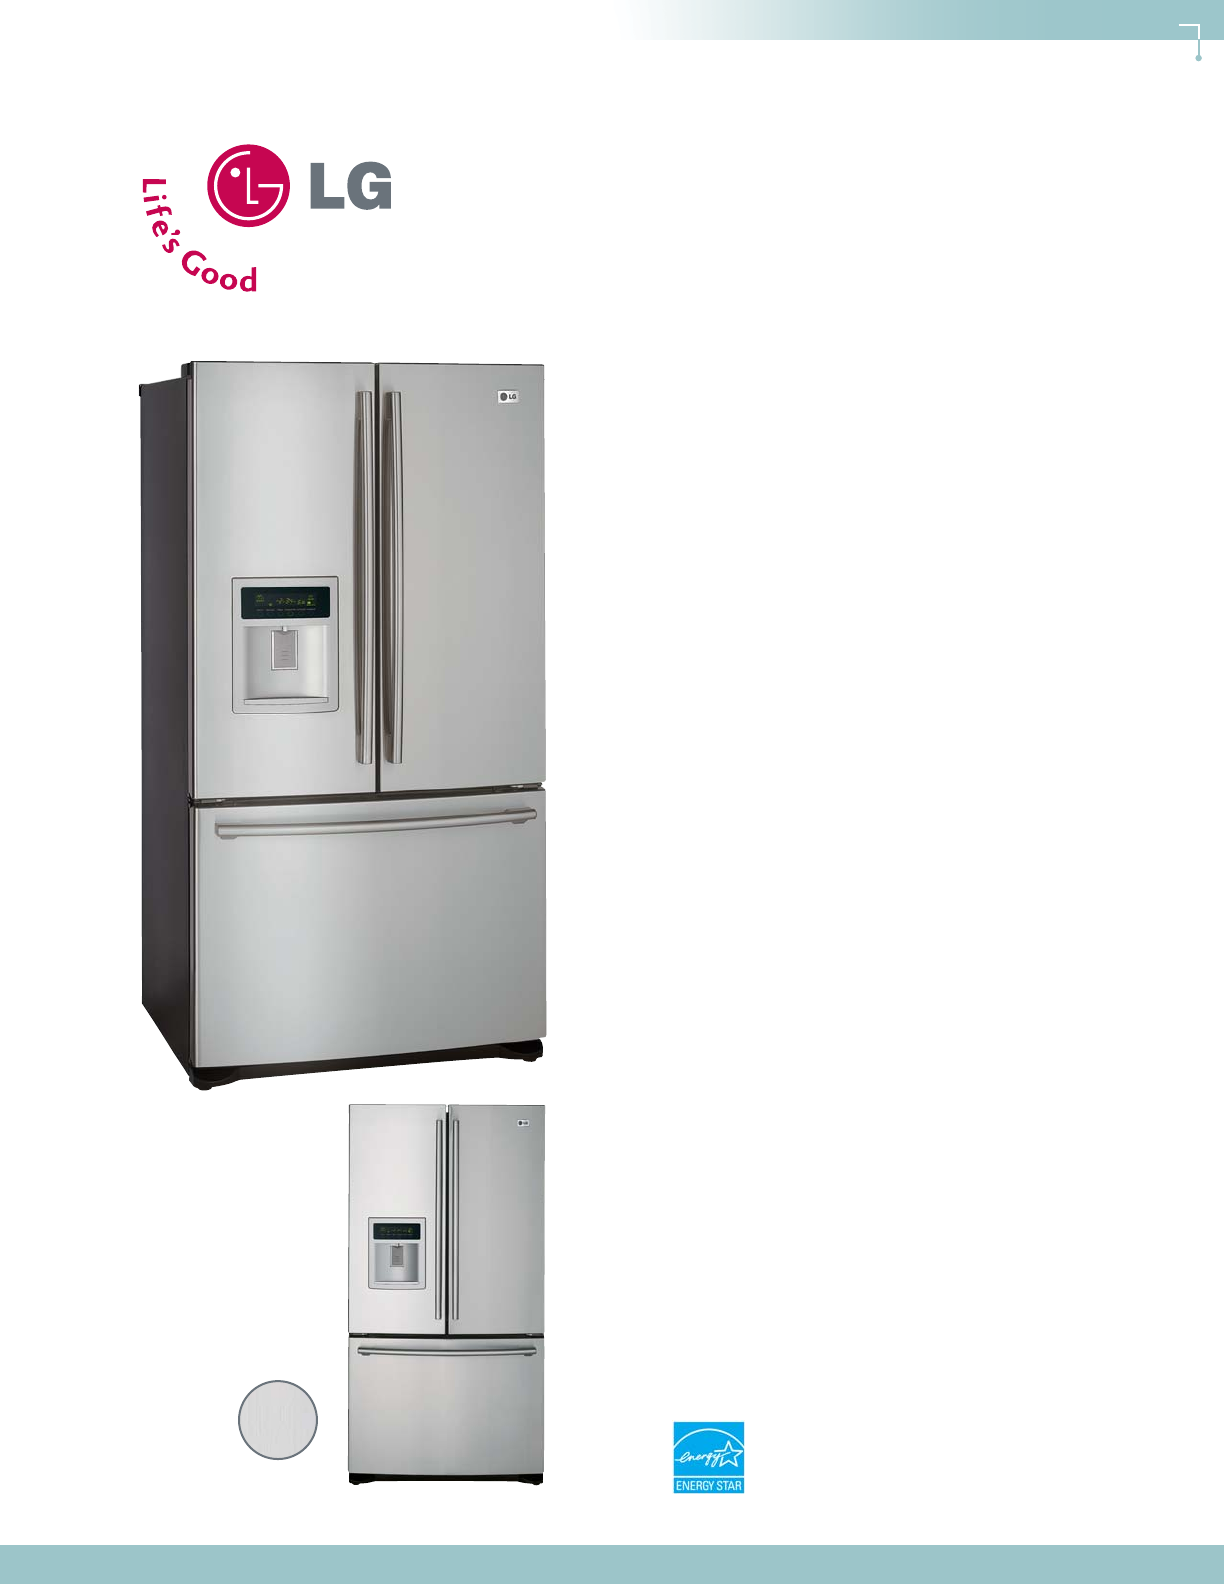 Lg Electronics Refrigerator Lfd21860 User Guide